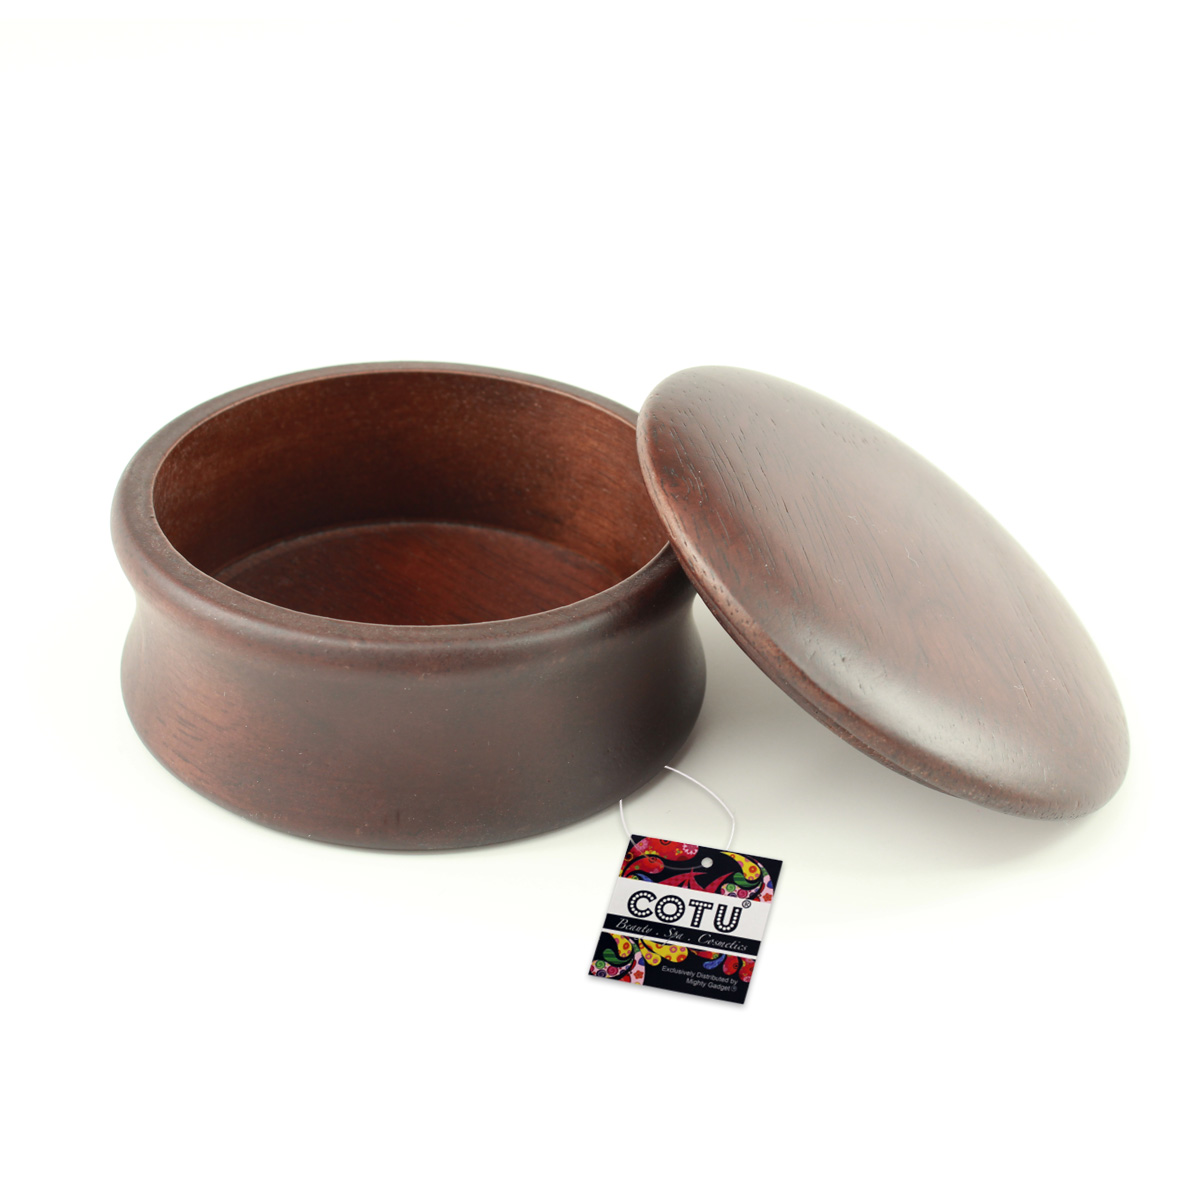 COTU Natural Wood Shave Soap Bowl 1